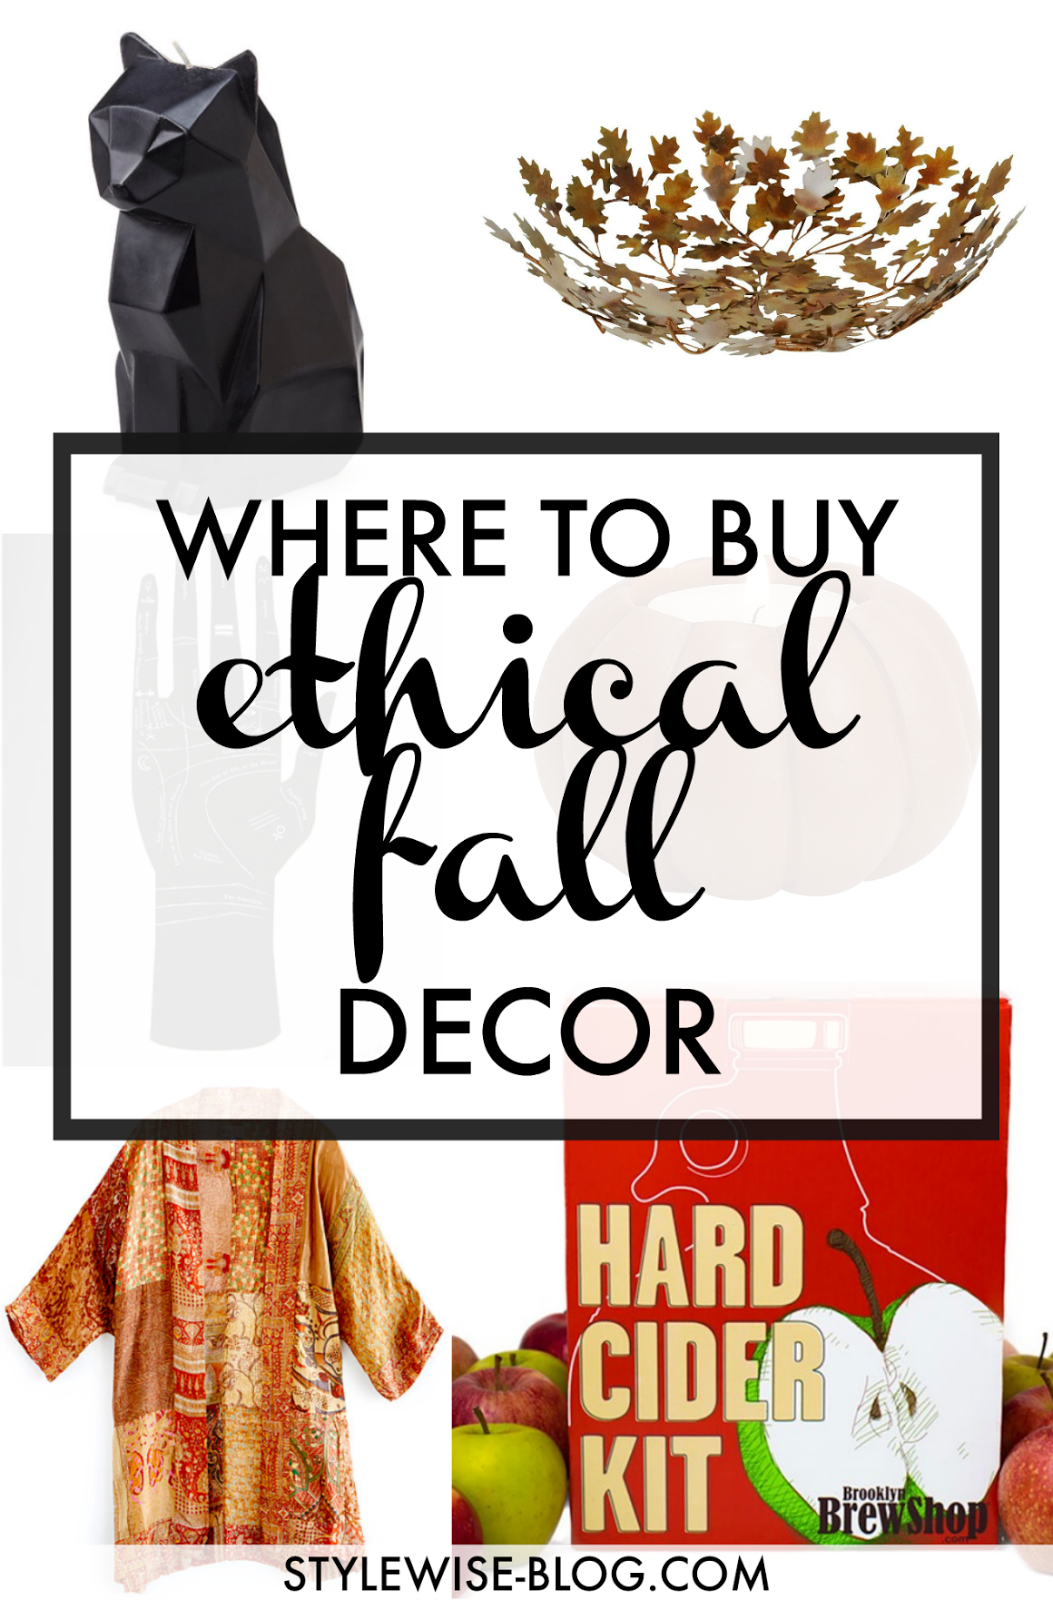 ethical home decor for halloween and fall